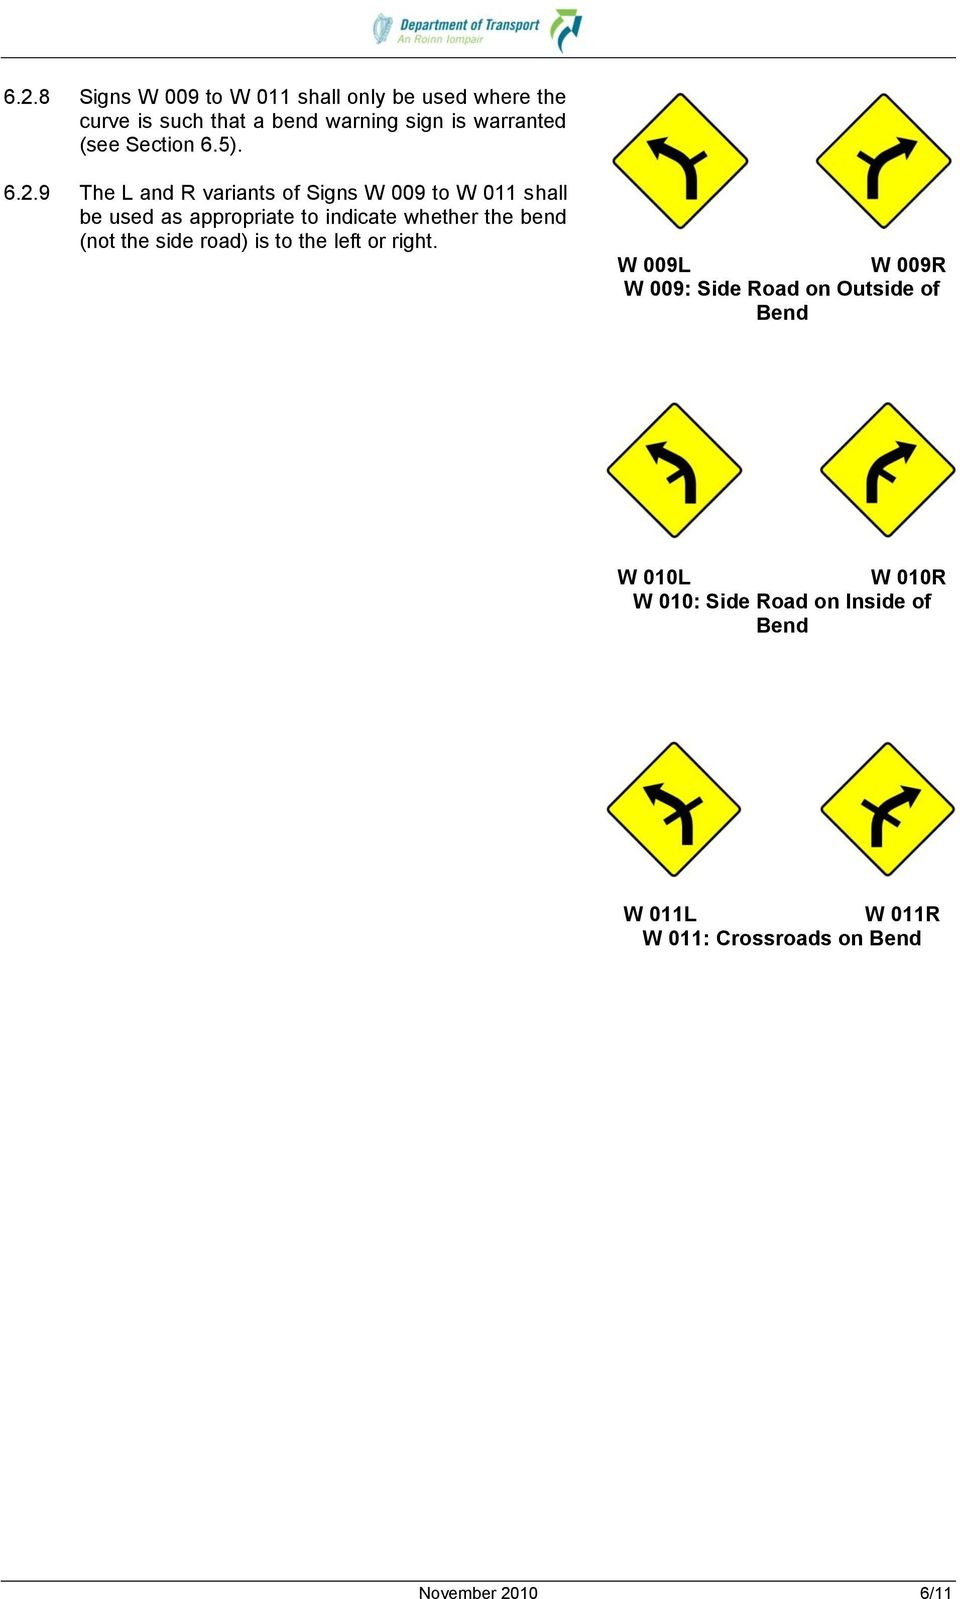 9 The L and R variants of Signs W 009 to W 011 shall be used as appropriate to indicate whether the bend (not